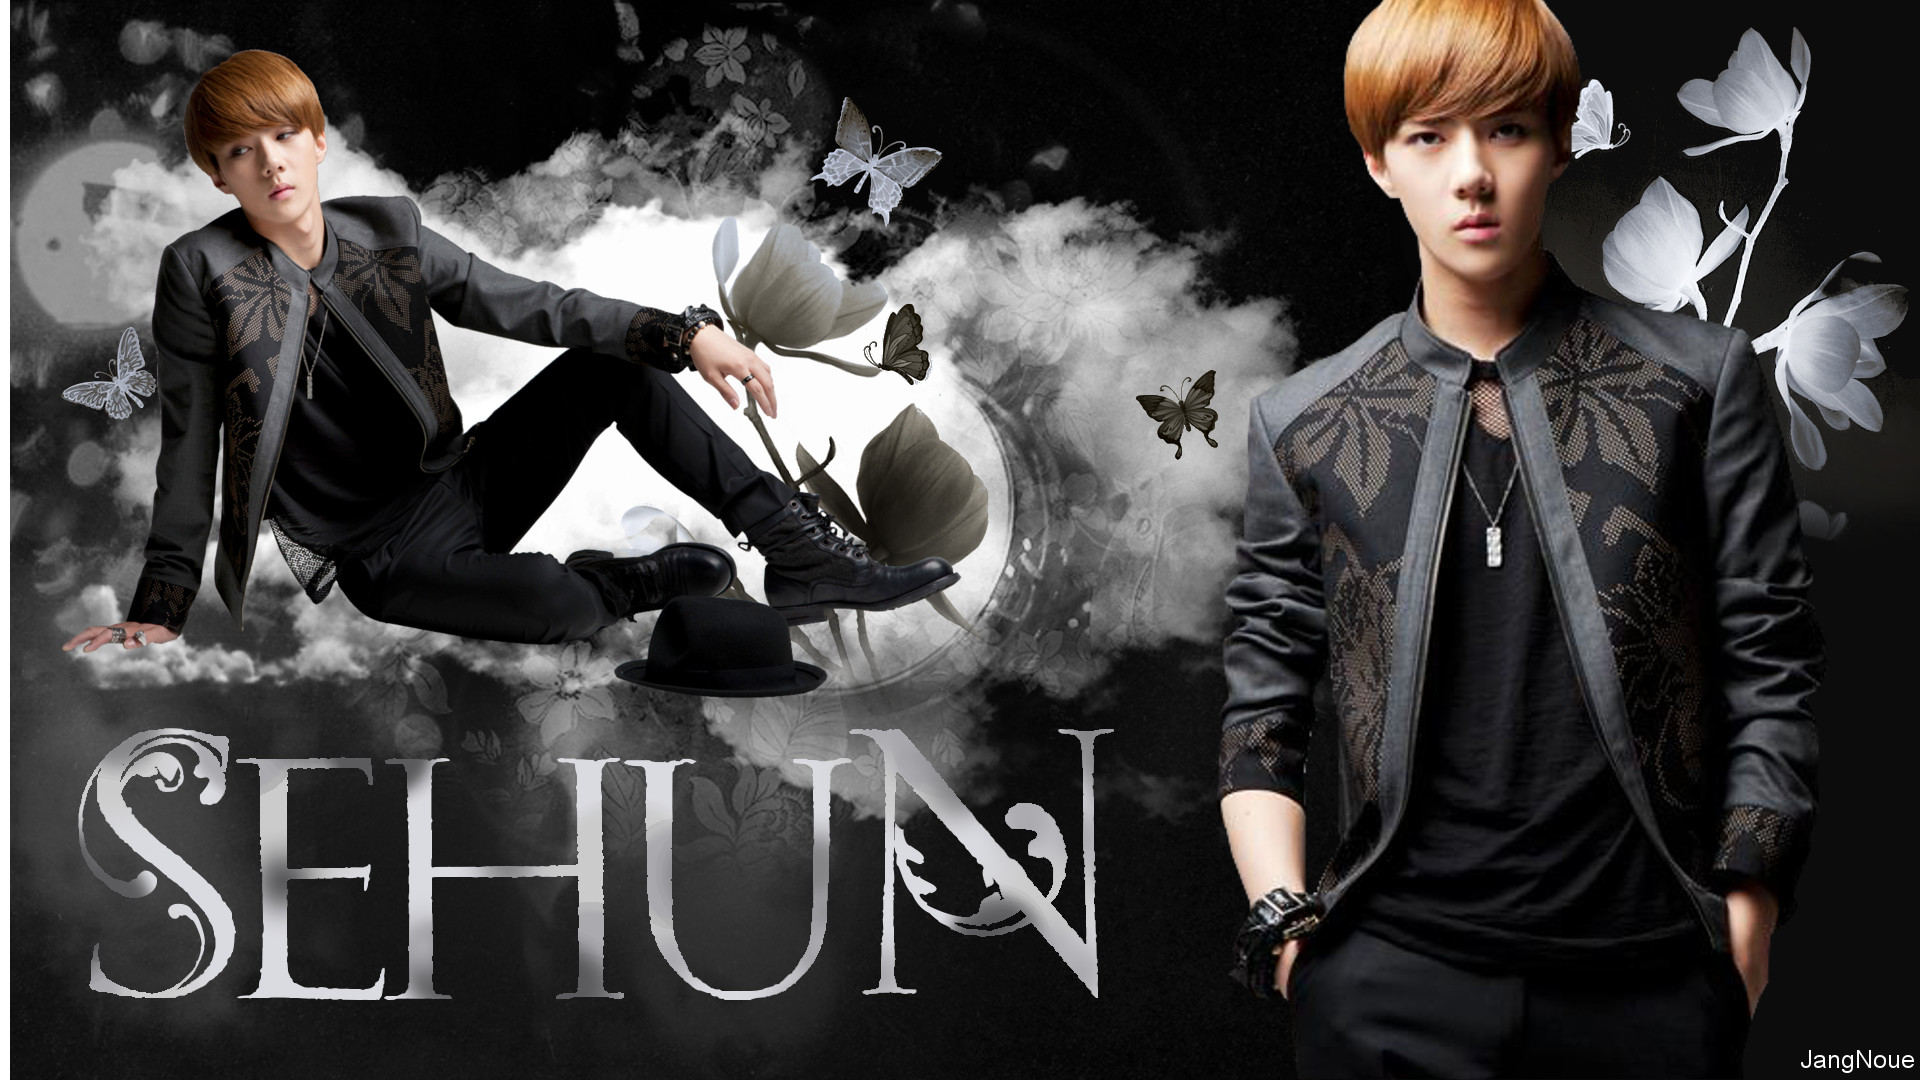 EXO – Sehun by JangNoue on DeviantArt